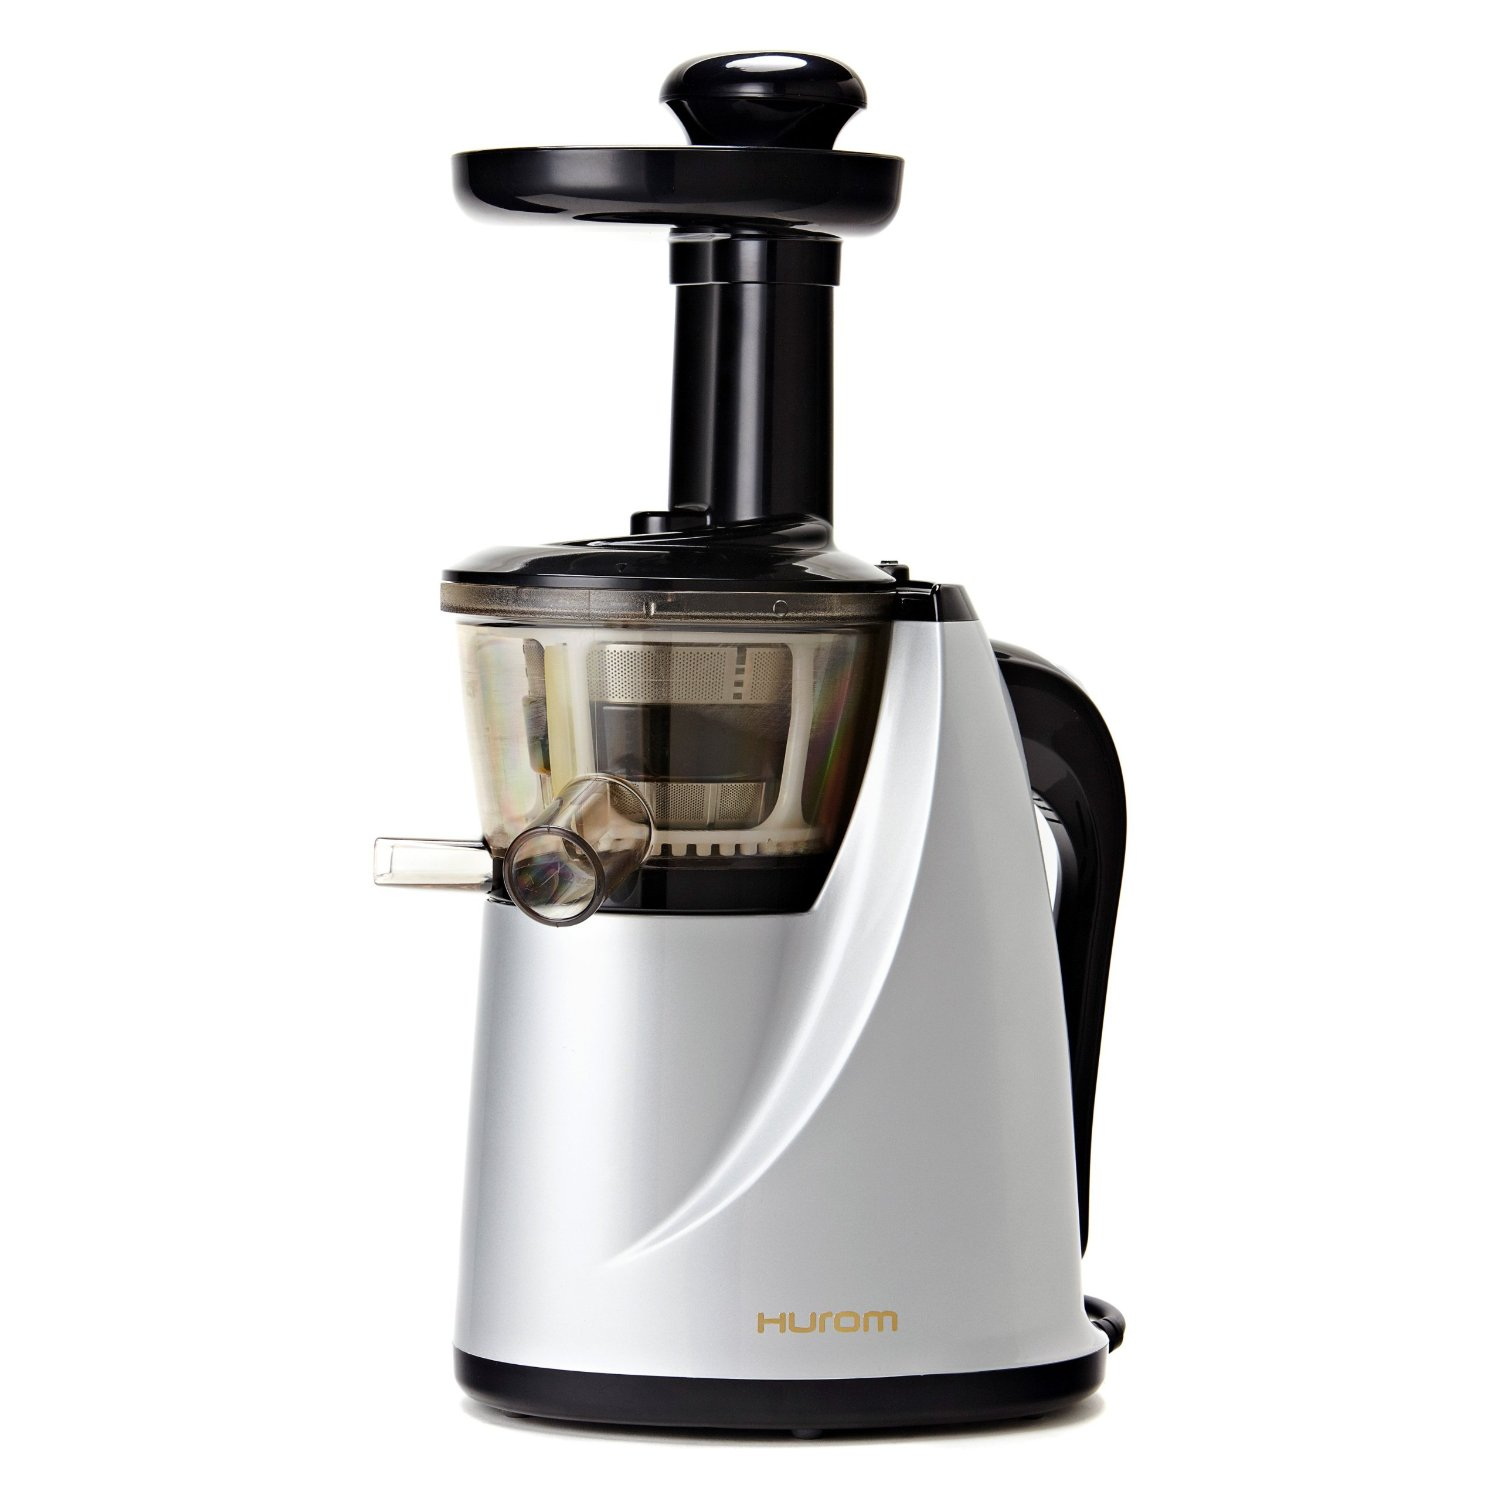 Slow Juicer And Cold Press : Hurom HU-100 Masticating Slow Juicer Review - Best Cold ...